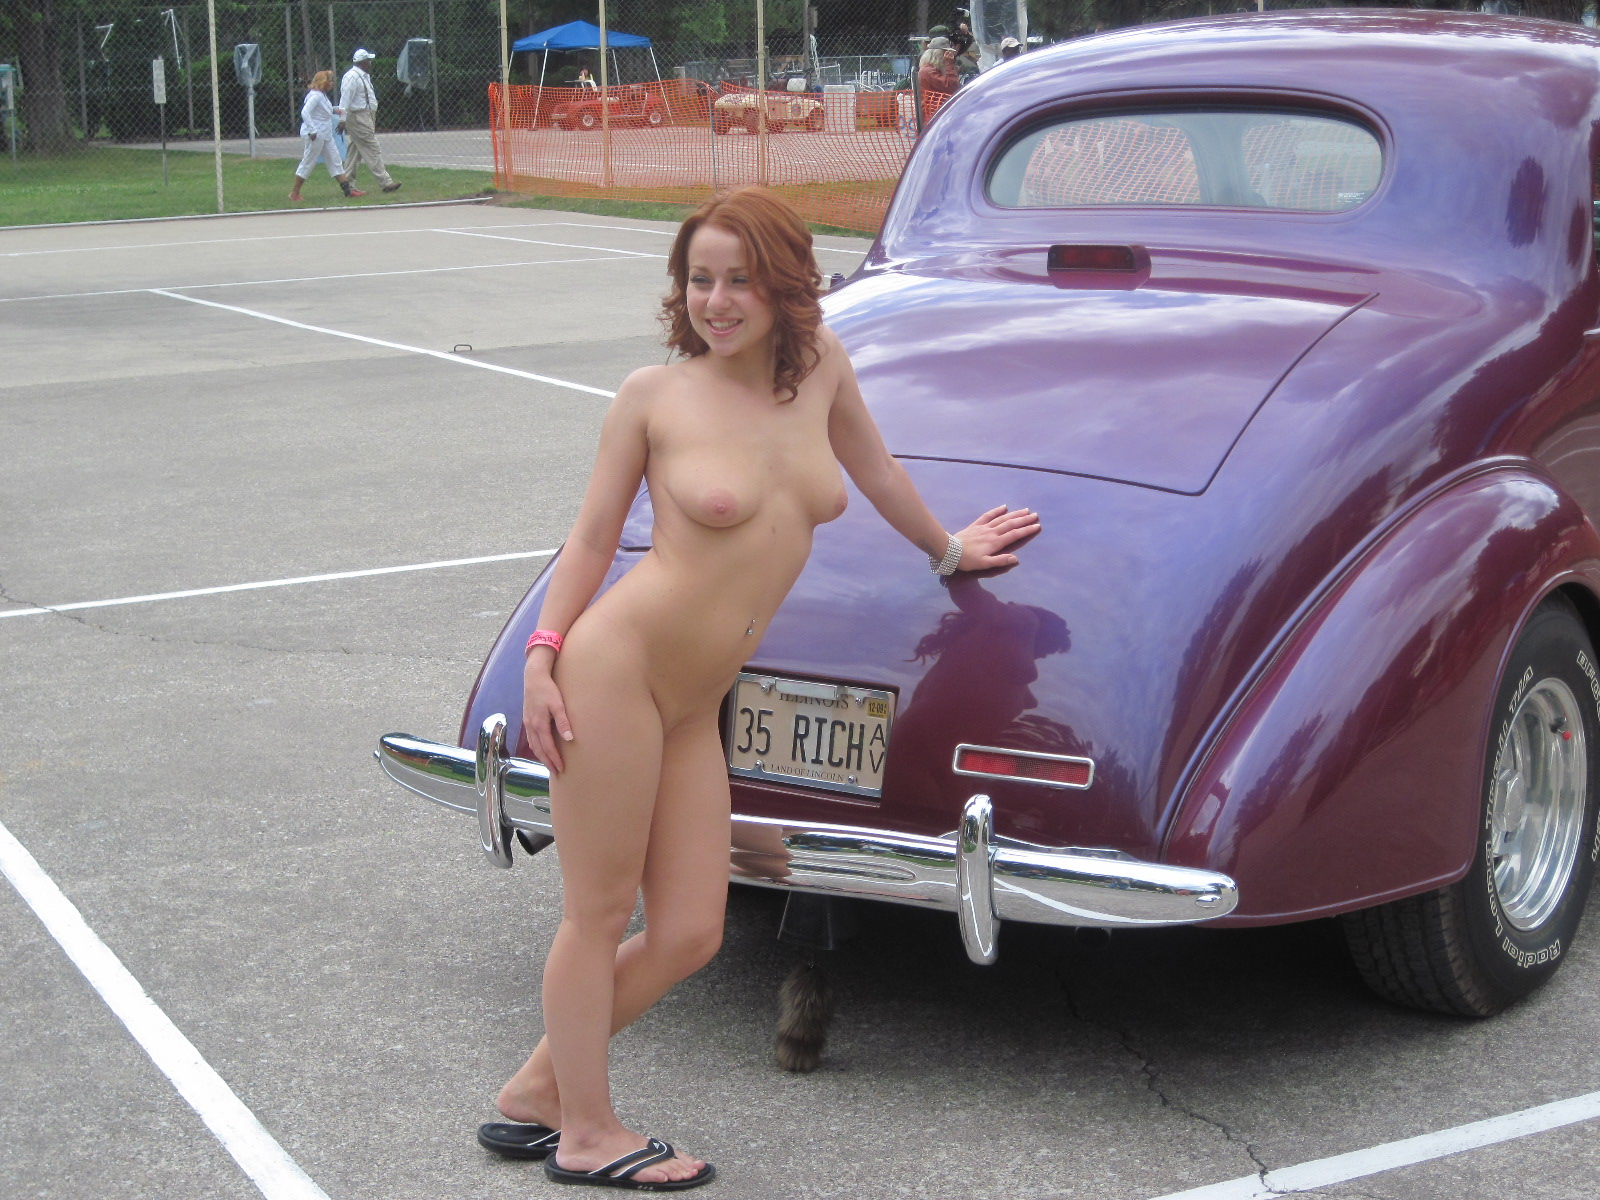 Pictures of naked girls and hot rods excellent